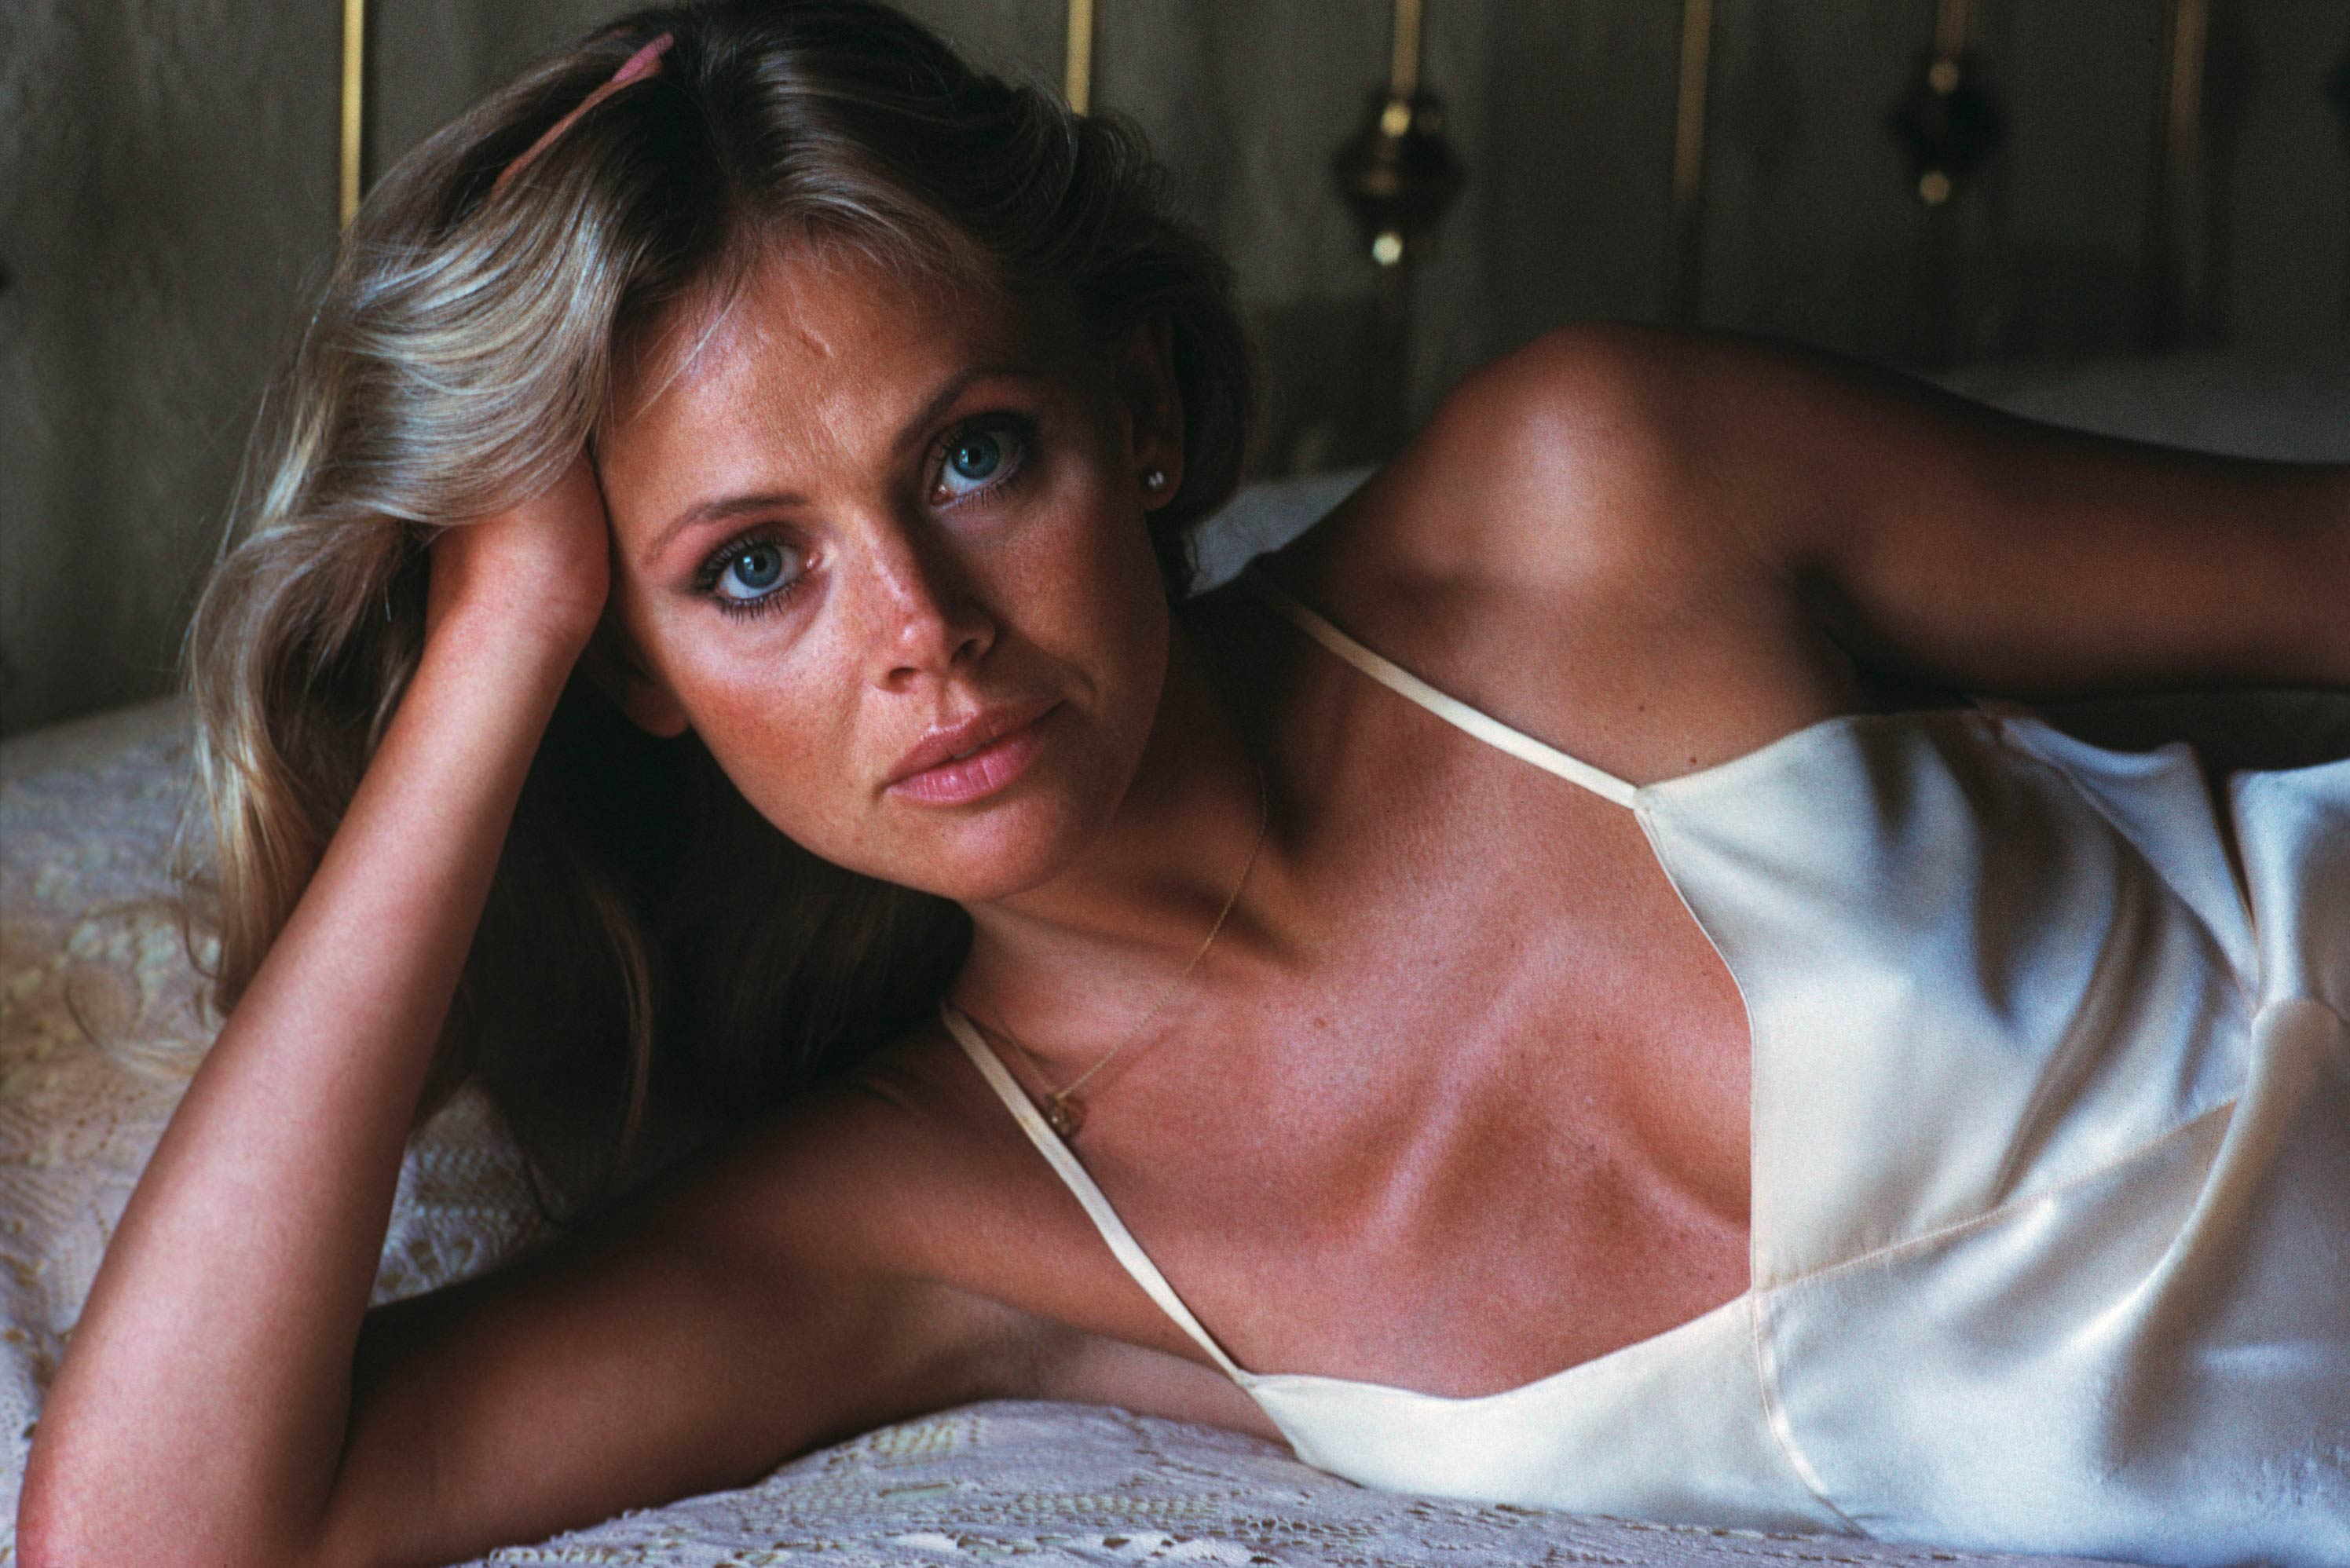 britt ekland agebritt ekland bond, бритт экланд фото, britt ekland movies, britt ekland, britt ekland rod stewart, britt ekland now, britt ekland photos, britt ekland peter sellers, britt ekland wiki, britt ekland pictures, britt ekland imdb, britt ekland man with the golden gun, britt ekland svenska hollywoodfruar, britt ekland today, britt ekland age, britt ekland net worth, britt ekland ålder, britt ekland images